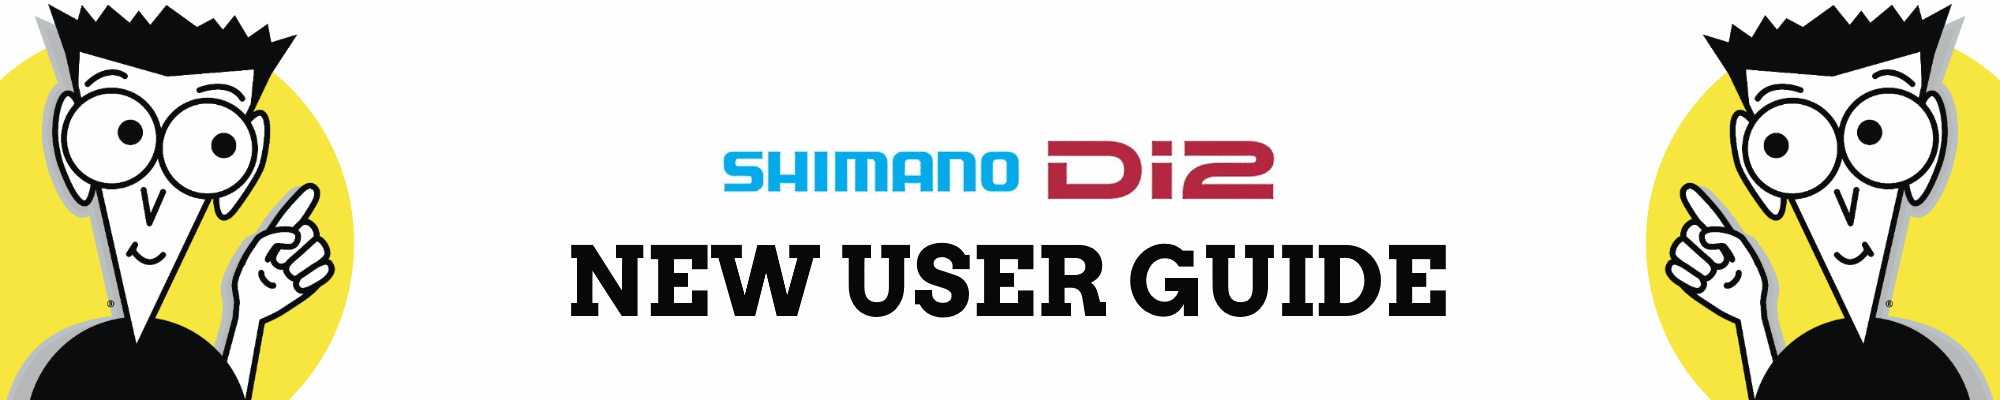 Image for Di2 for Dummies - beginner's guide to Di2